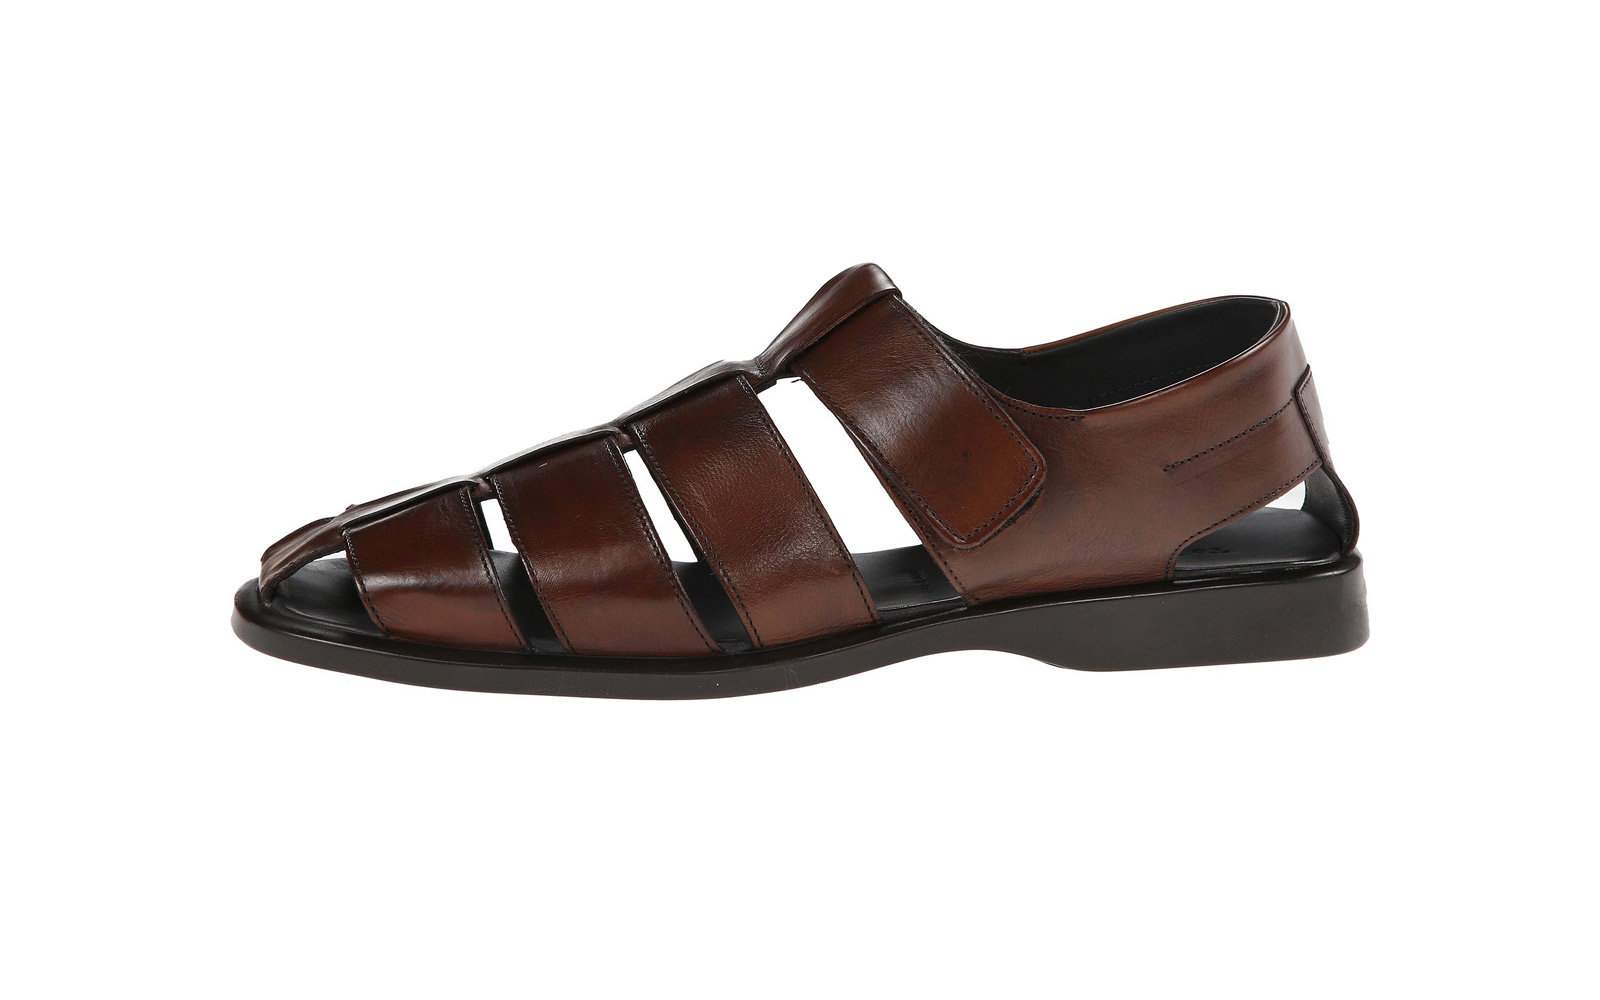 c30b1c83b951 The Best Men s Sandals to Pack for Your Next Vacation